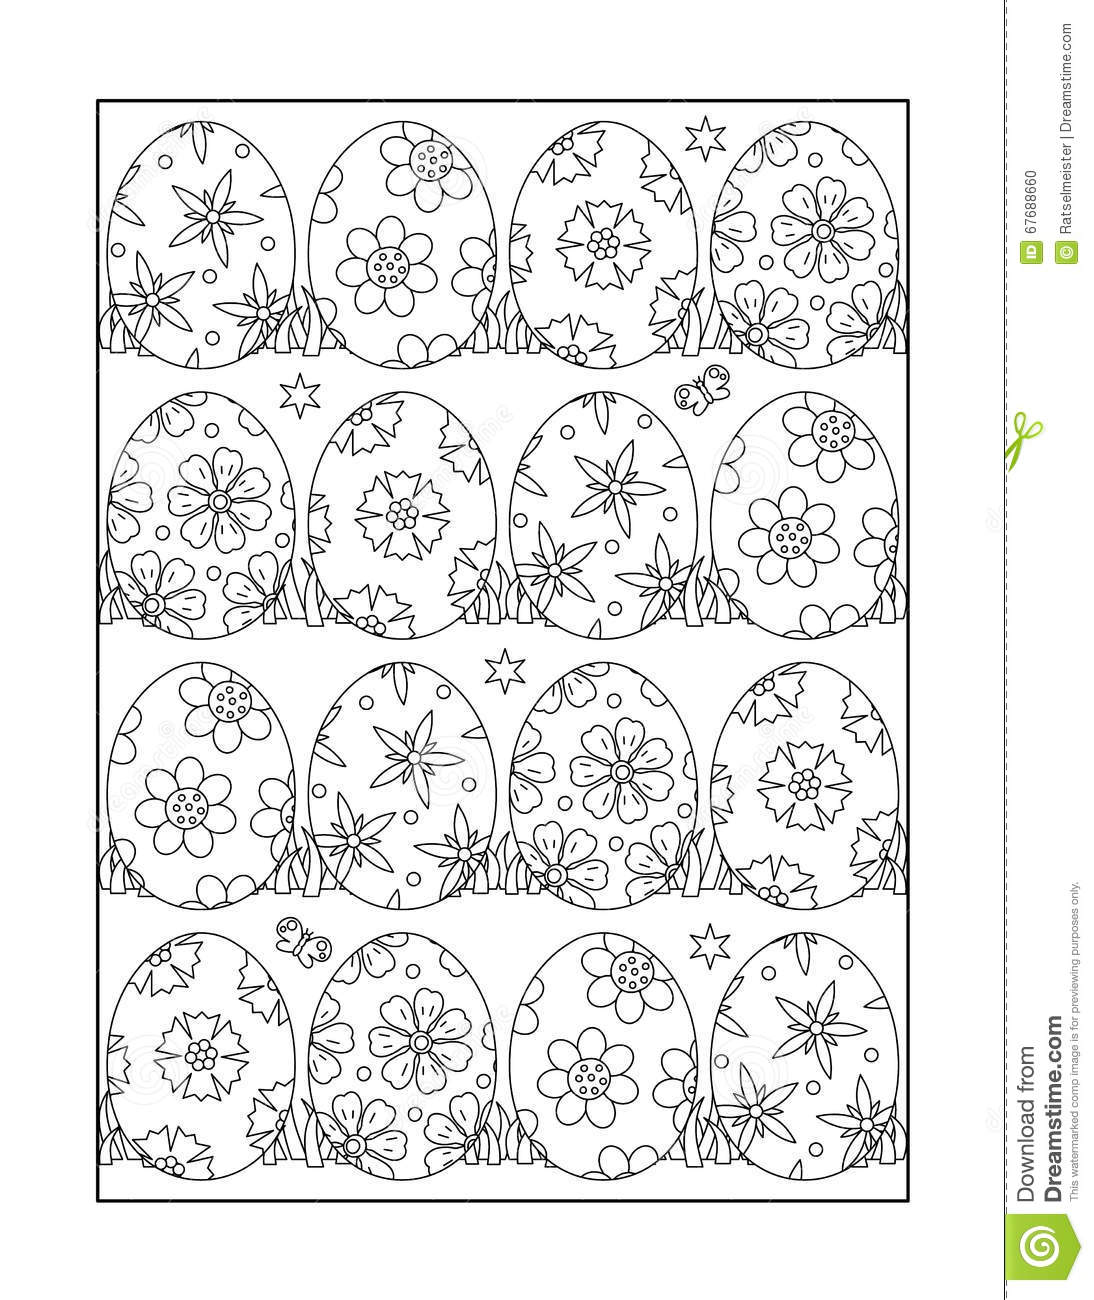 Monochrome Kleuren Coloring Page For Adults And Children, Or Black And White